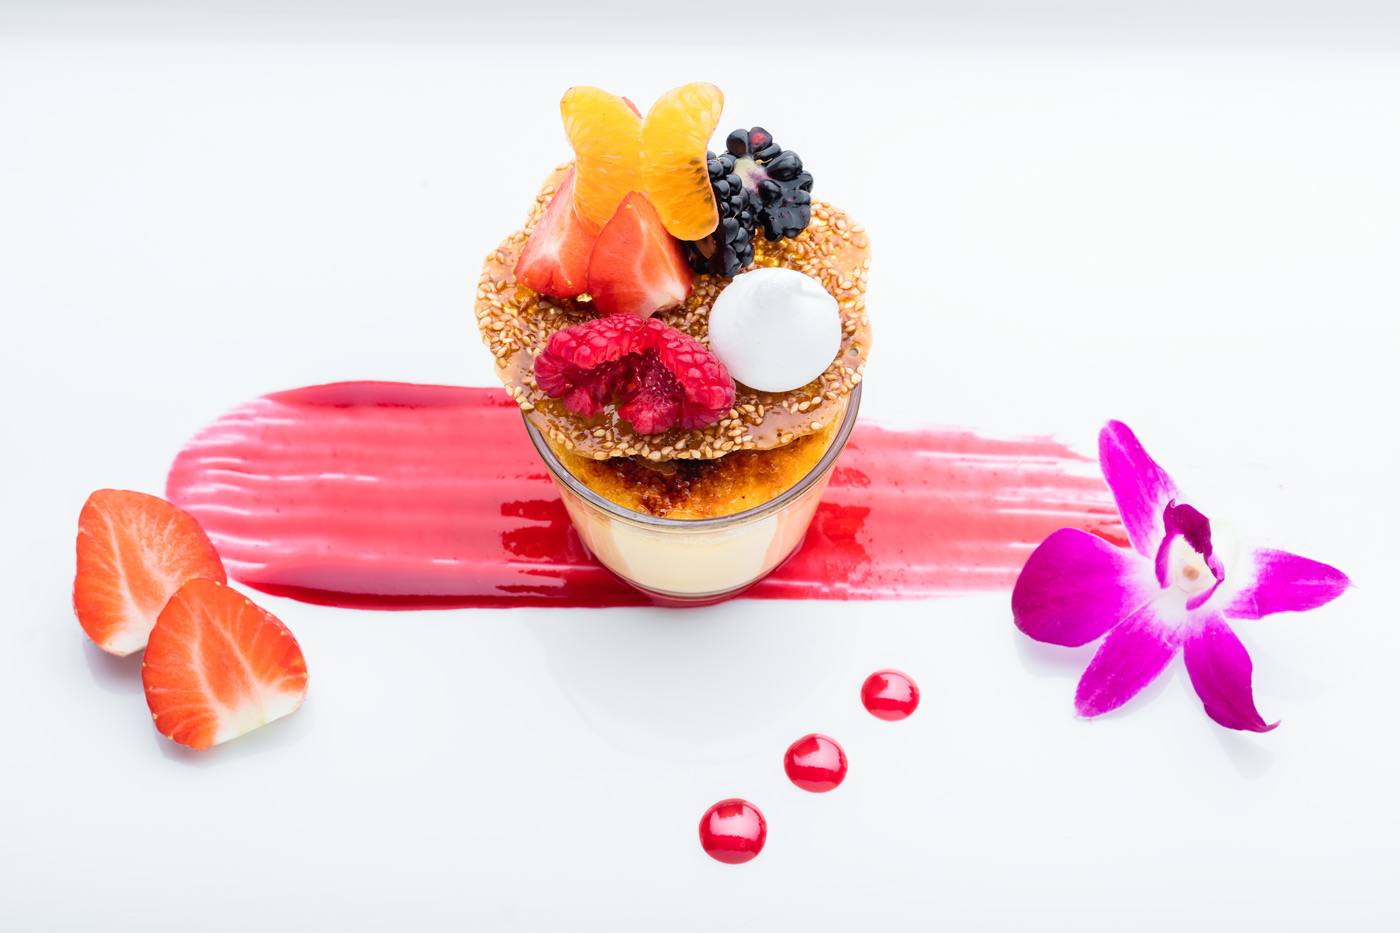 Plate with desert, creme brulee with fruits